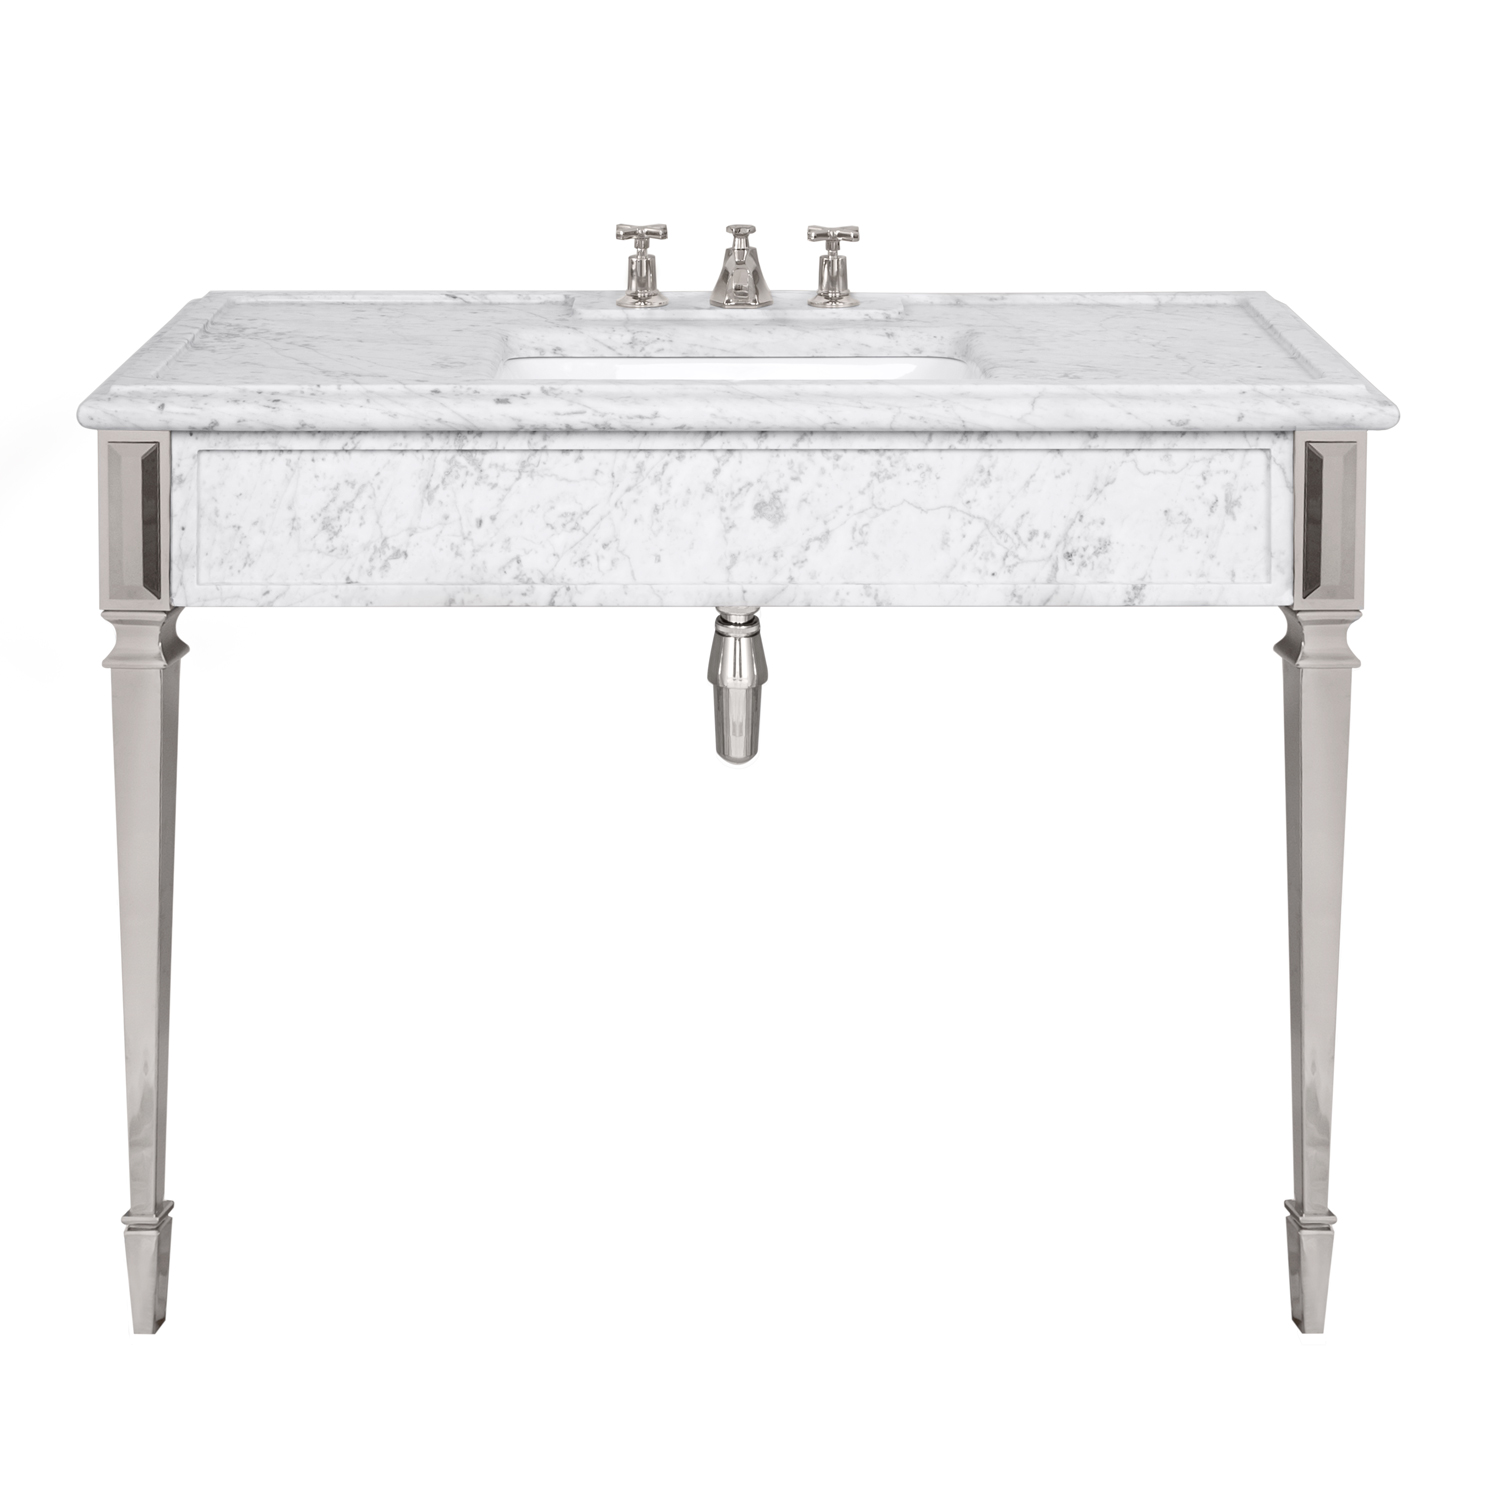 LB 6343 WH Mackintosh single white Carrara marble console